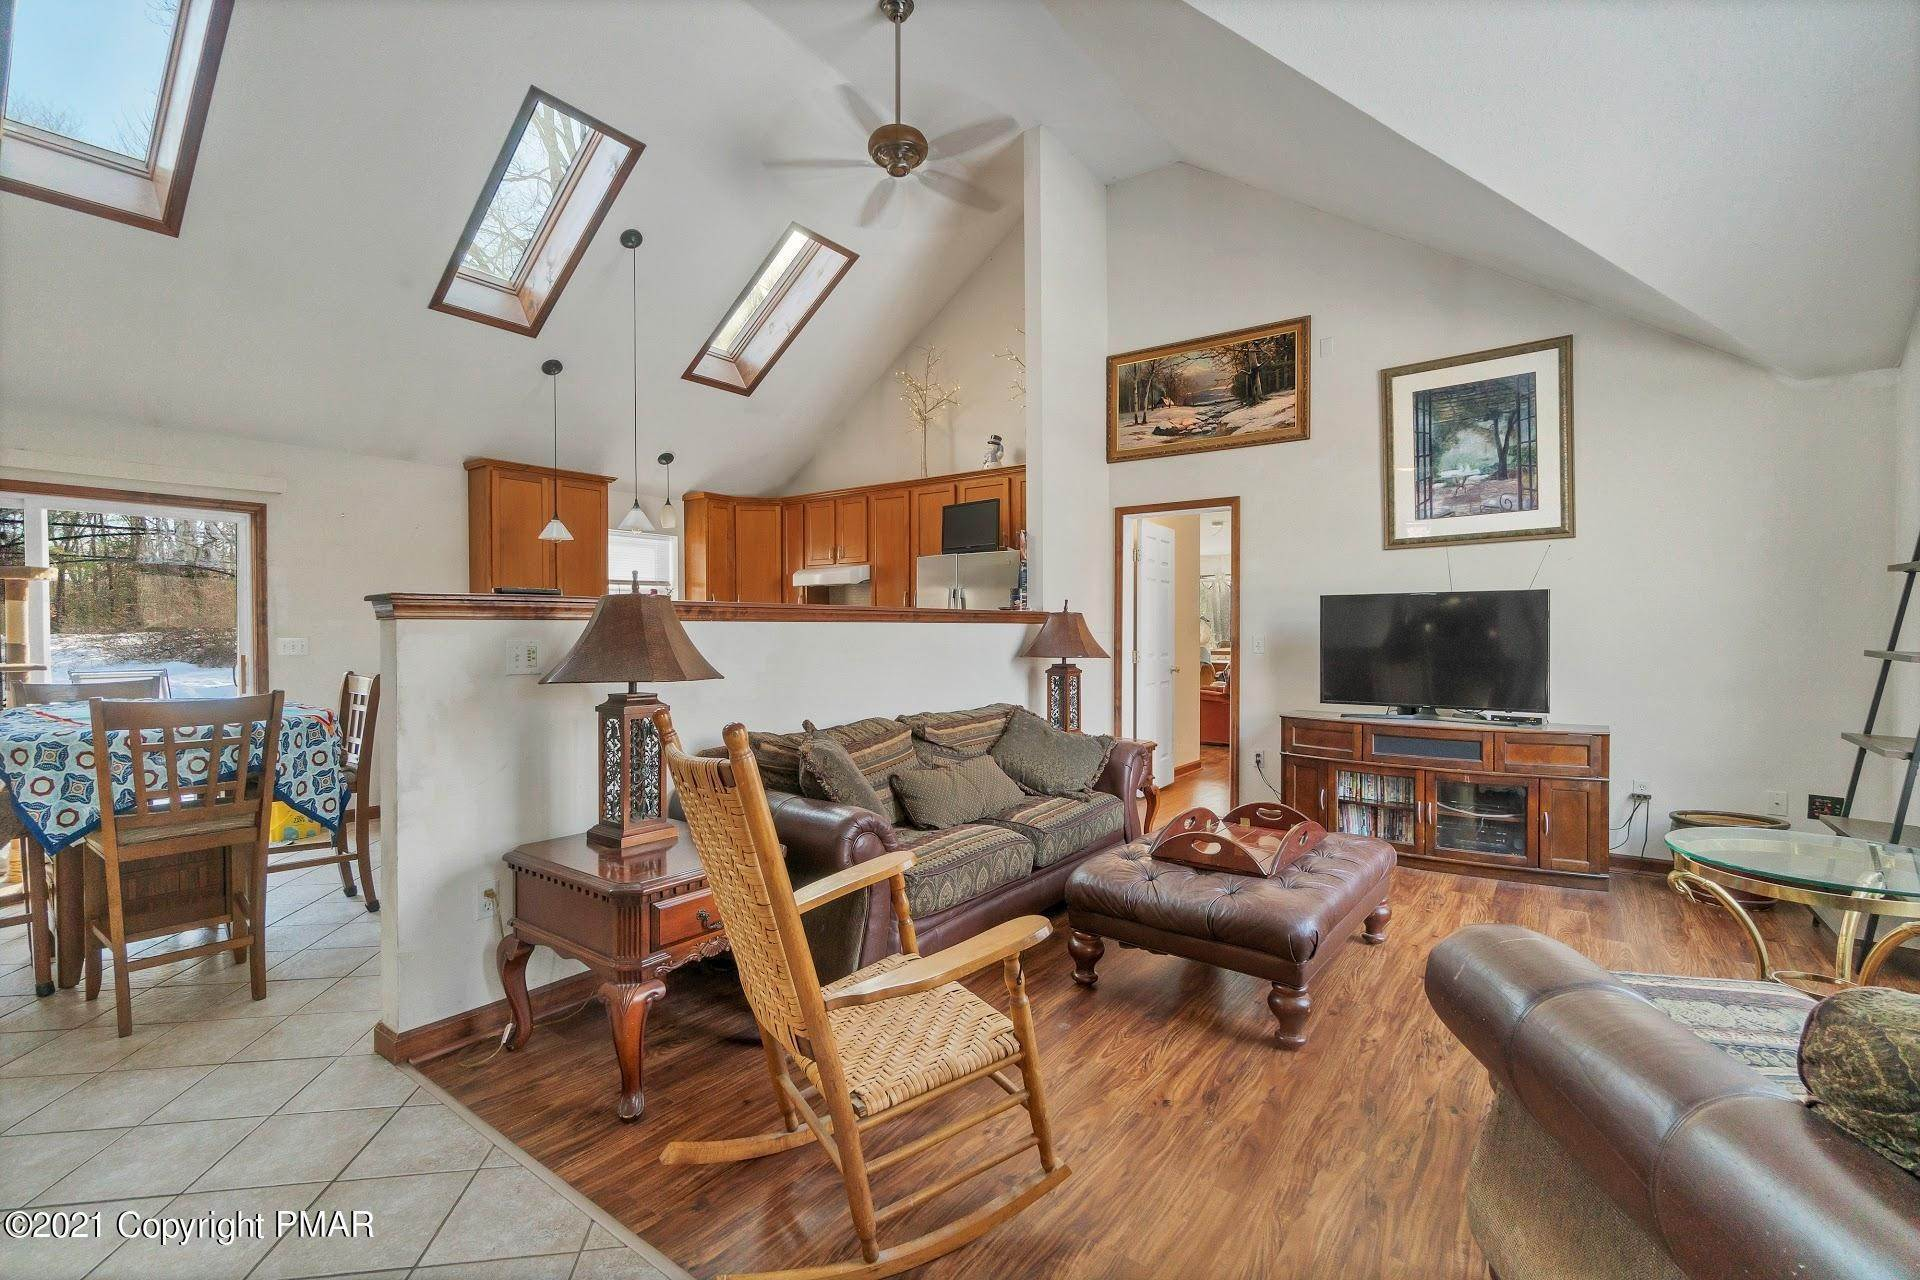 5. Single Family Homes for Sale at 232 Cherry Lane Rd Bartonsville, Pennsylvania 18321 United States